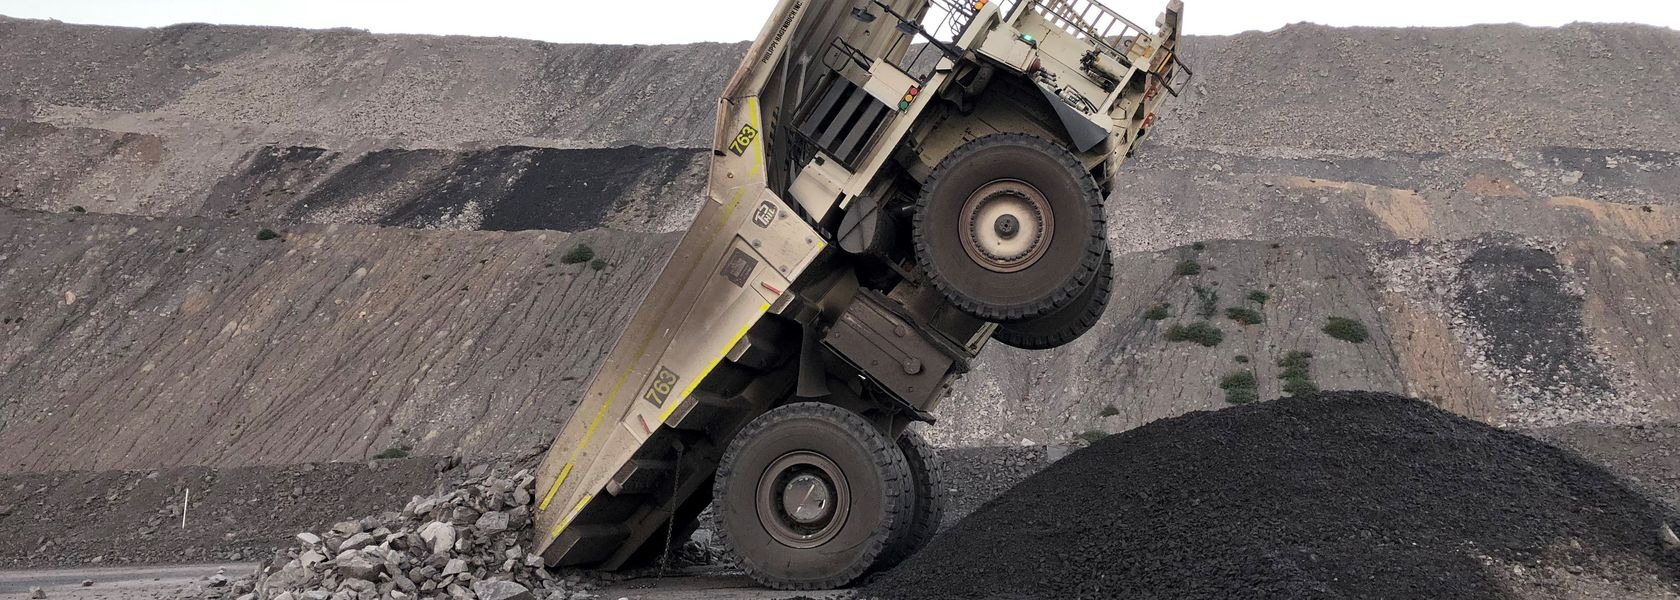 Micro-sleep causes haul truck to sit up and take notice